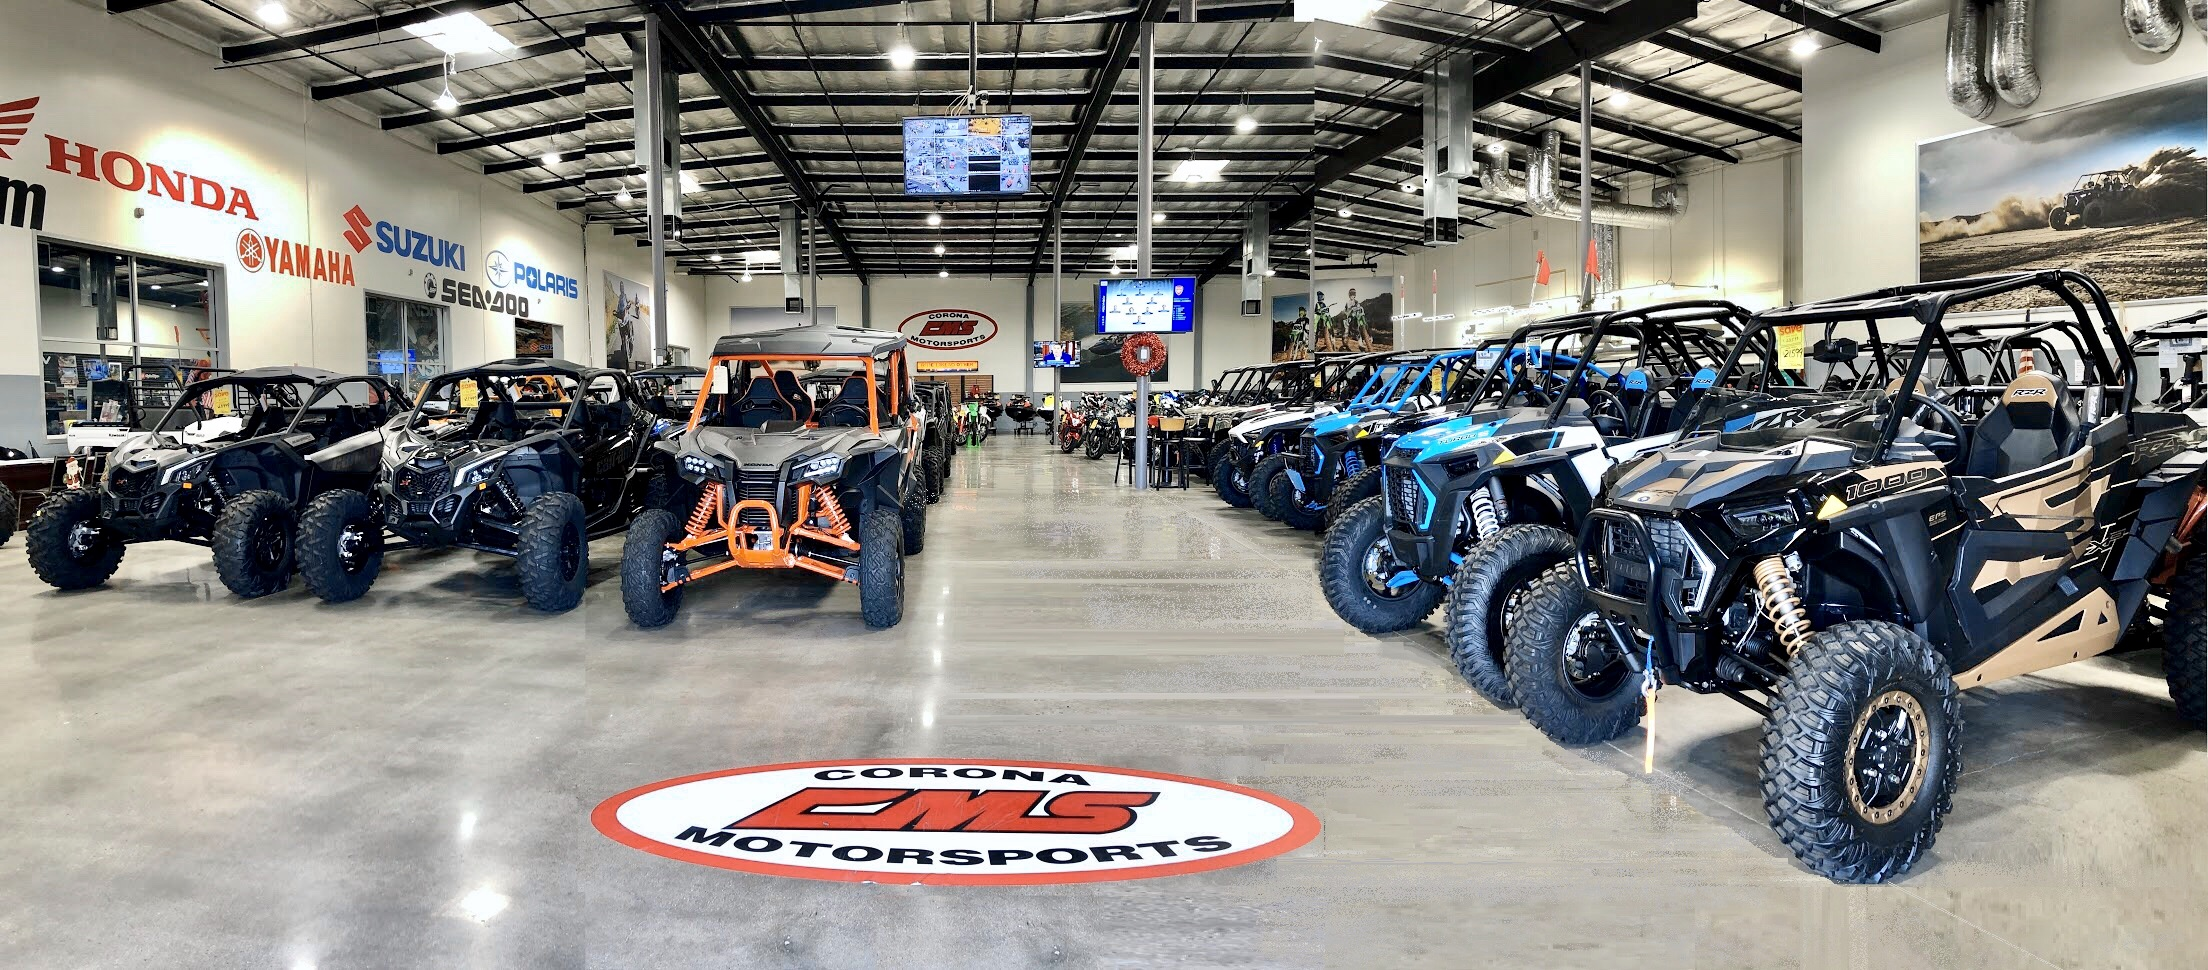 Corona Motorsports Showroom features rows of brightly colored UTVs and motorcycles.